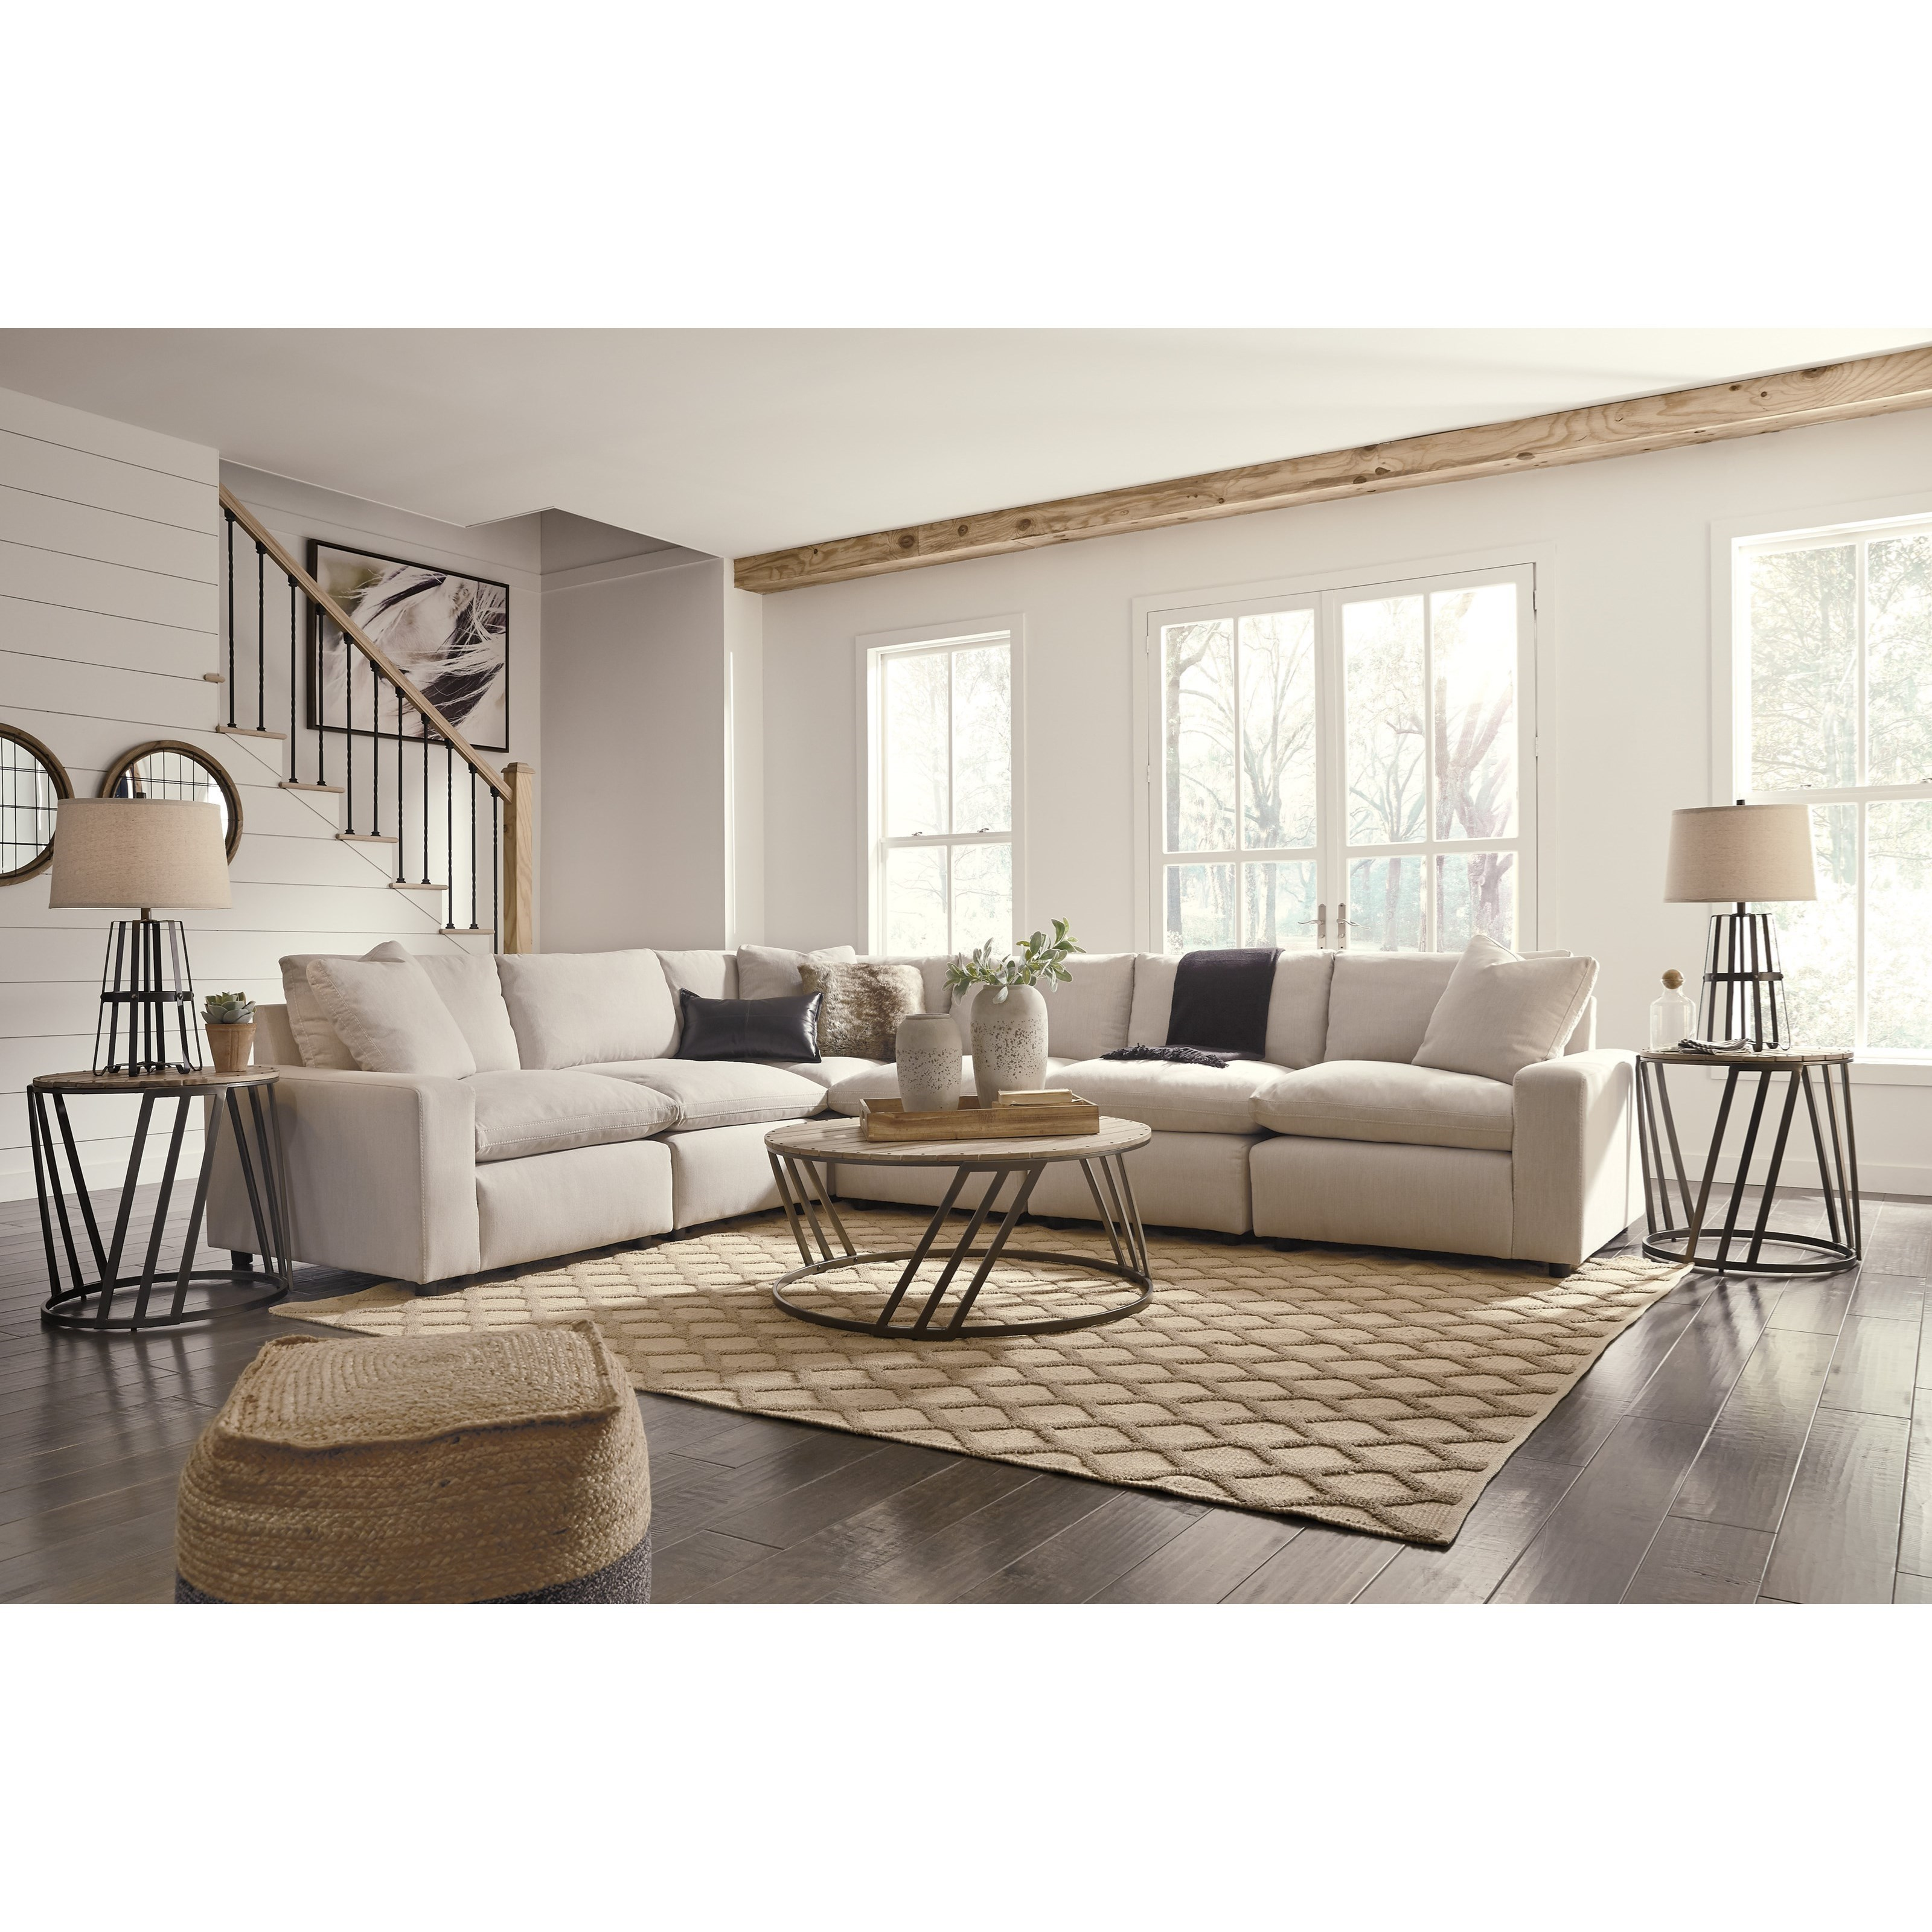 Savesto 6-Piece Sectional by Ashley (Signature Design) at Johnny Janosik